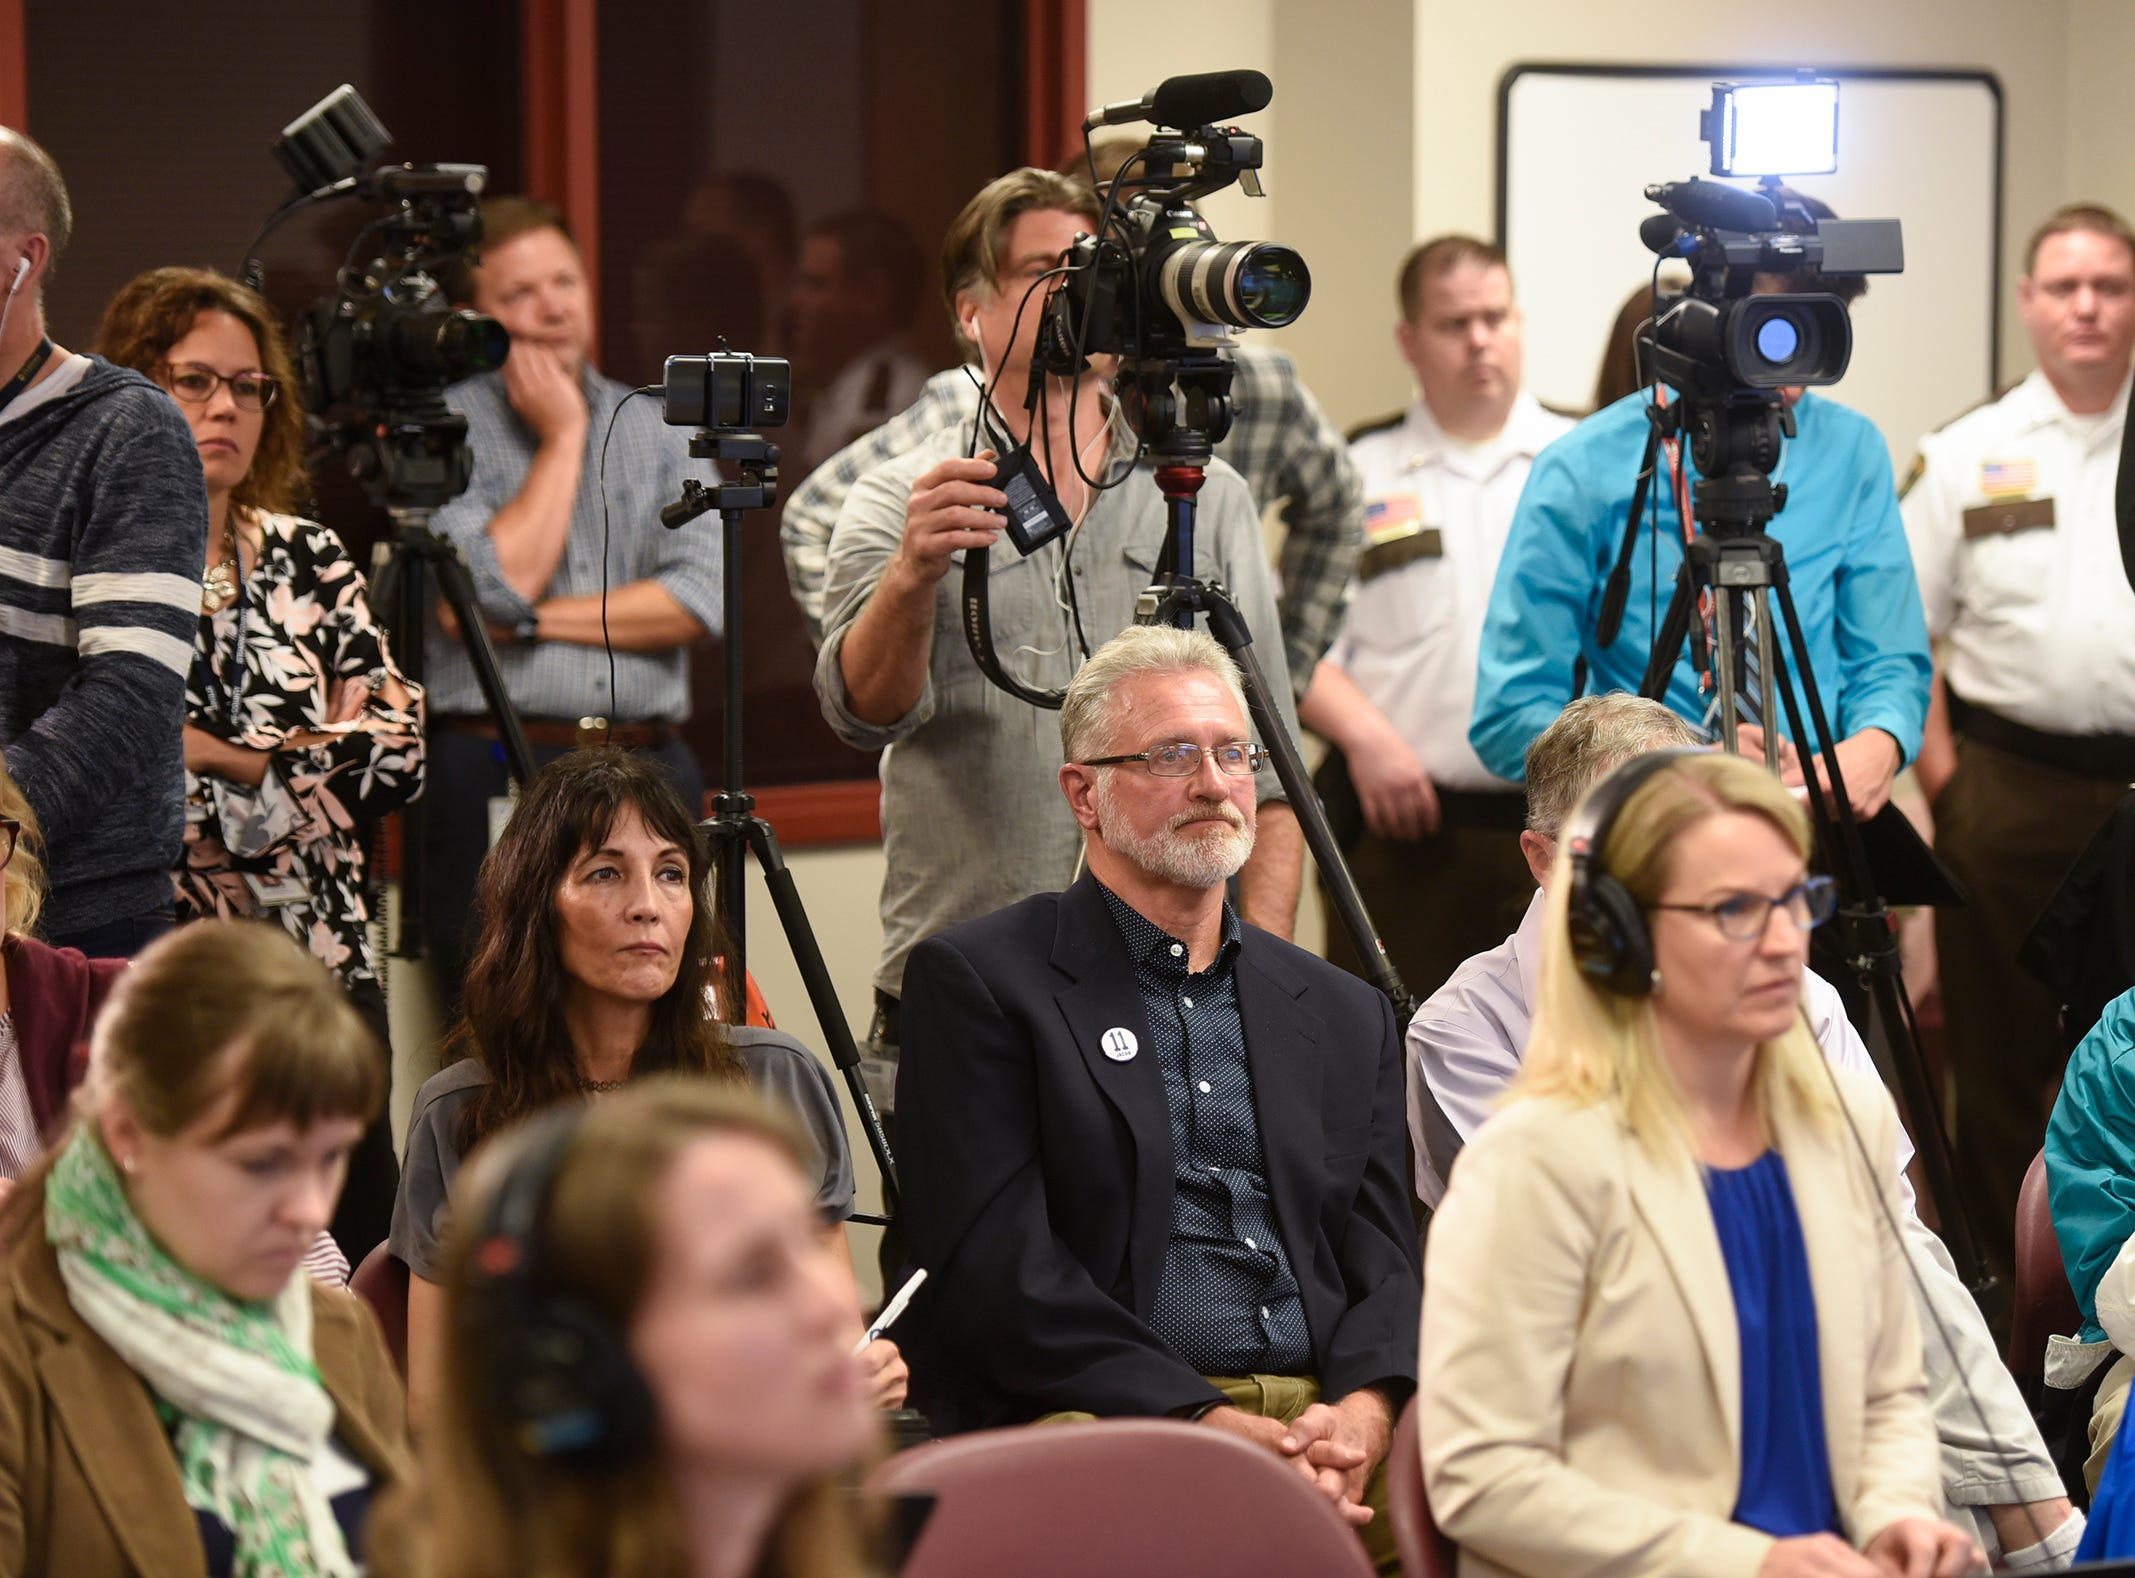 Jerry Wetterling watches during a press conference for the release of investigative files in case of his son, Jacob, Thursday, Sept. 20, 2018, in St. Cloud.